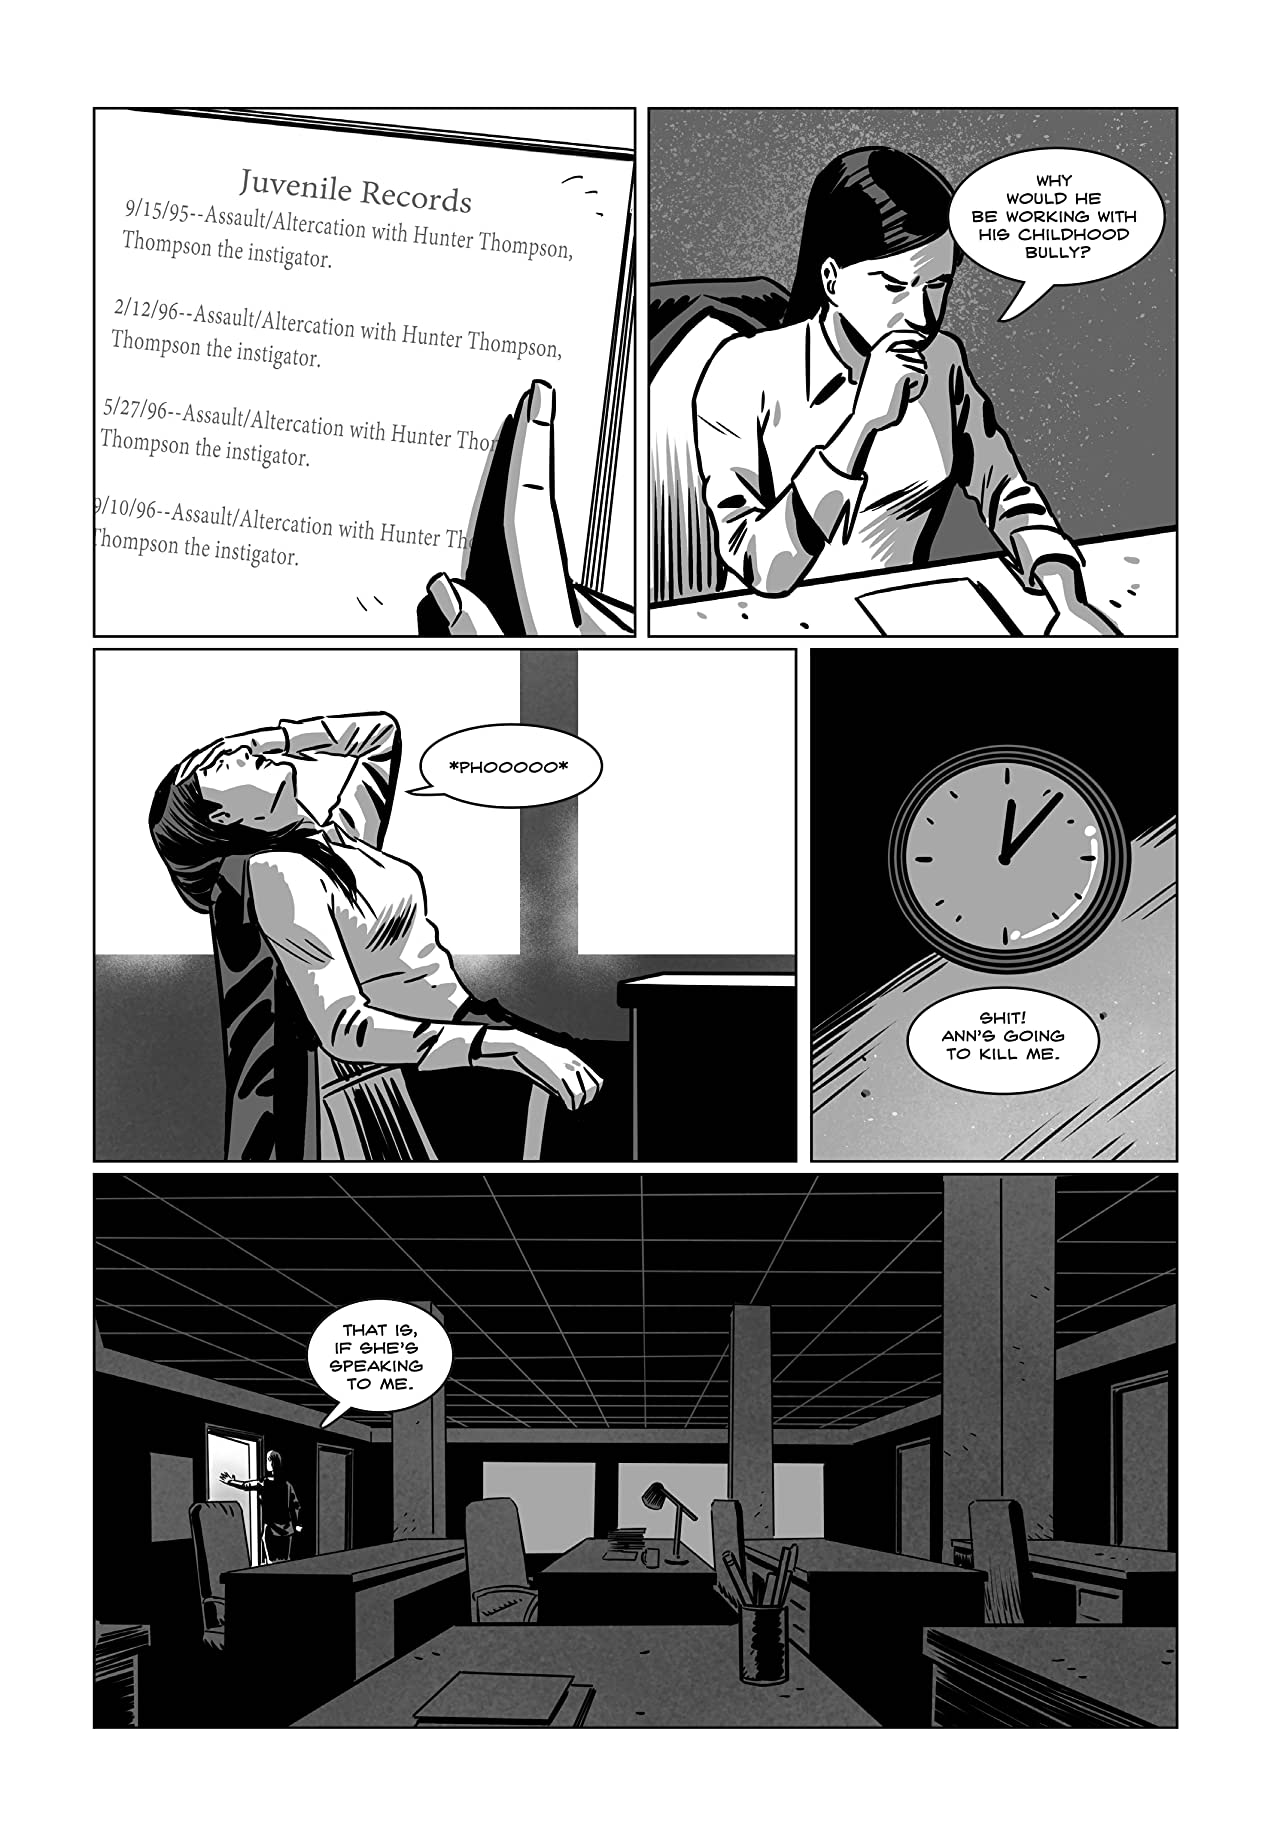 Rebirth of the Gangster 14 #14